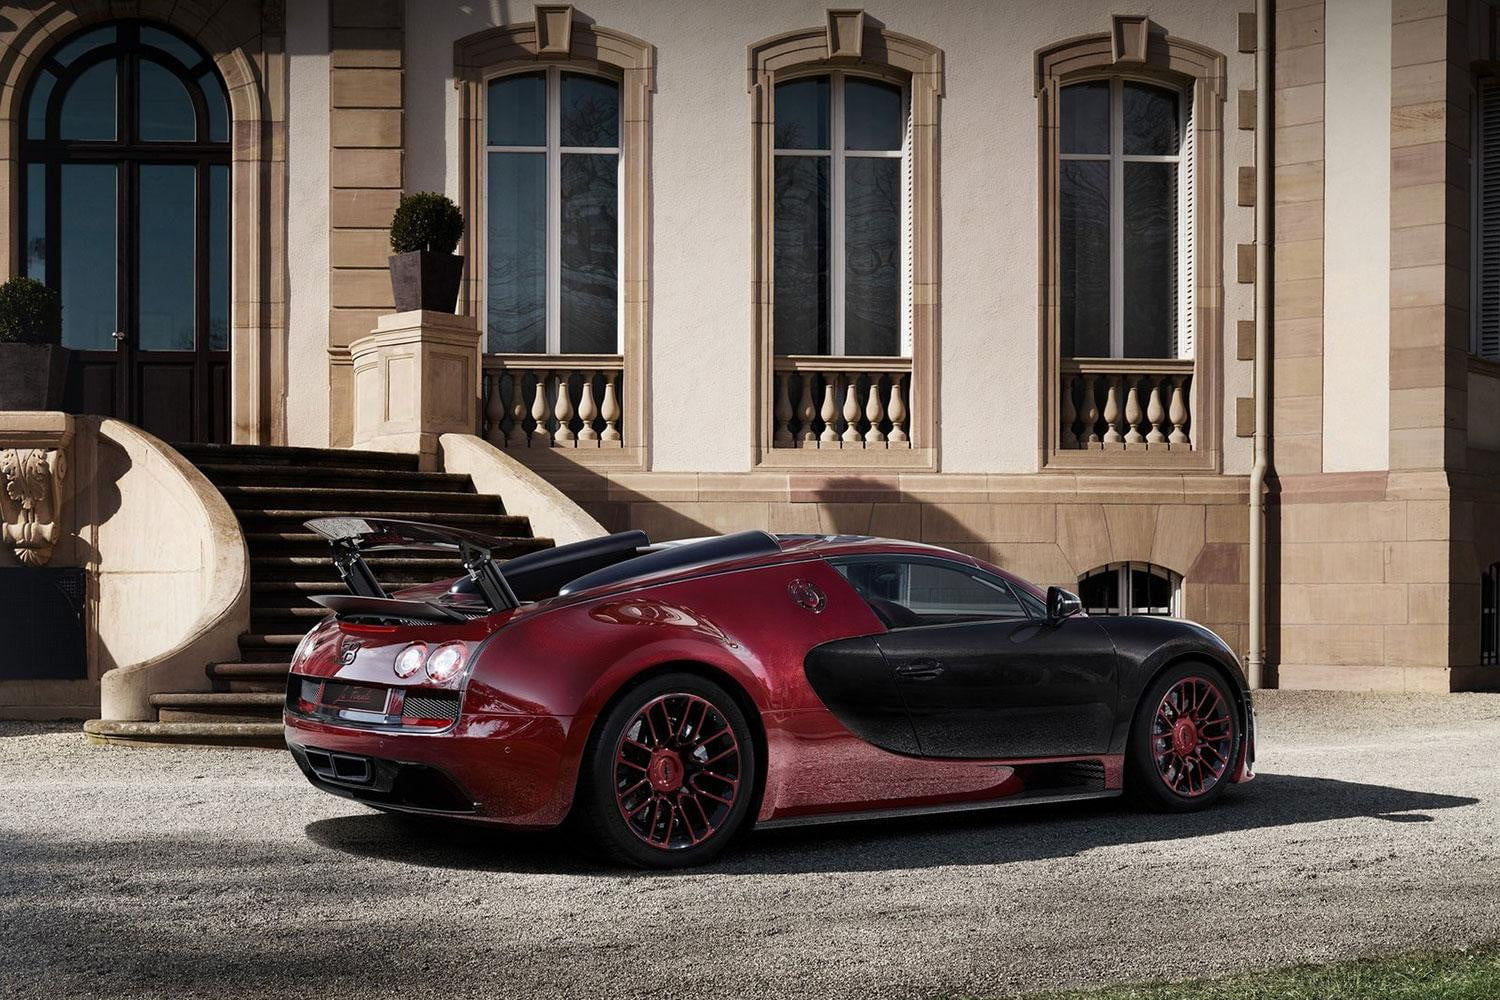 2015 bugatti grand sport vitesse 39 la finale 39 official specs pictures digital trends. Black Bedroom Furniture Sets. Home Design Ideas